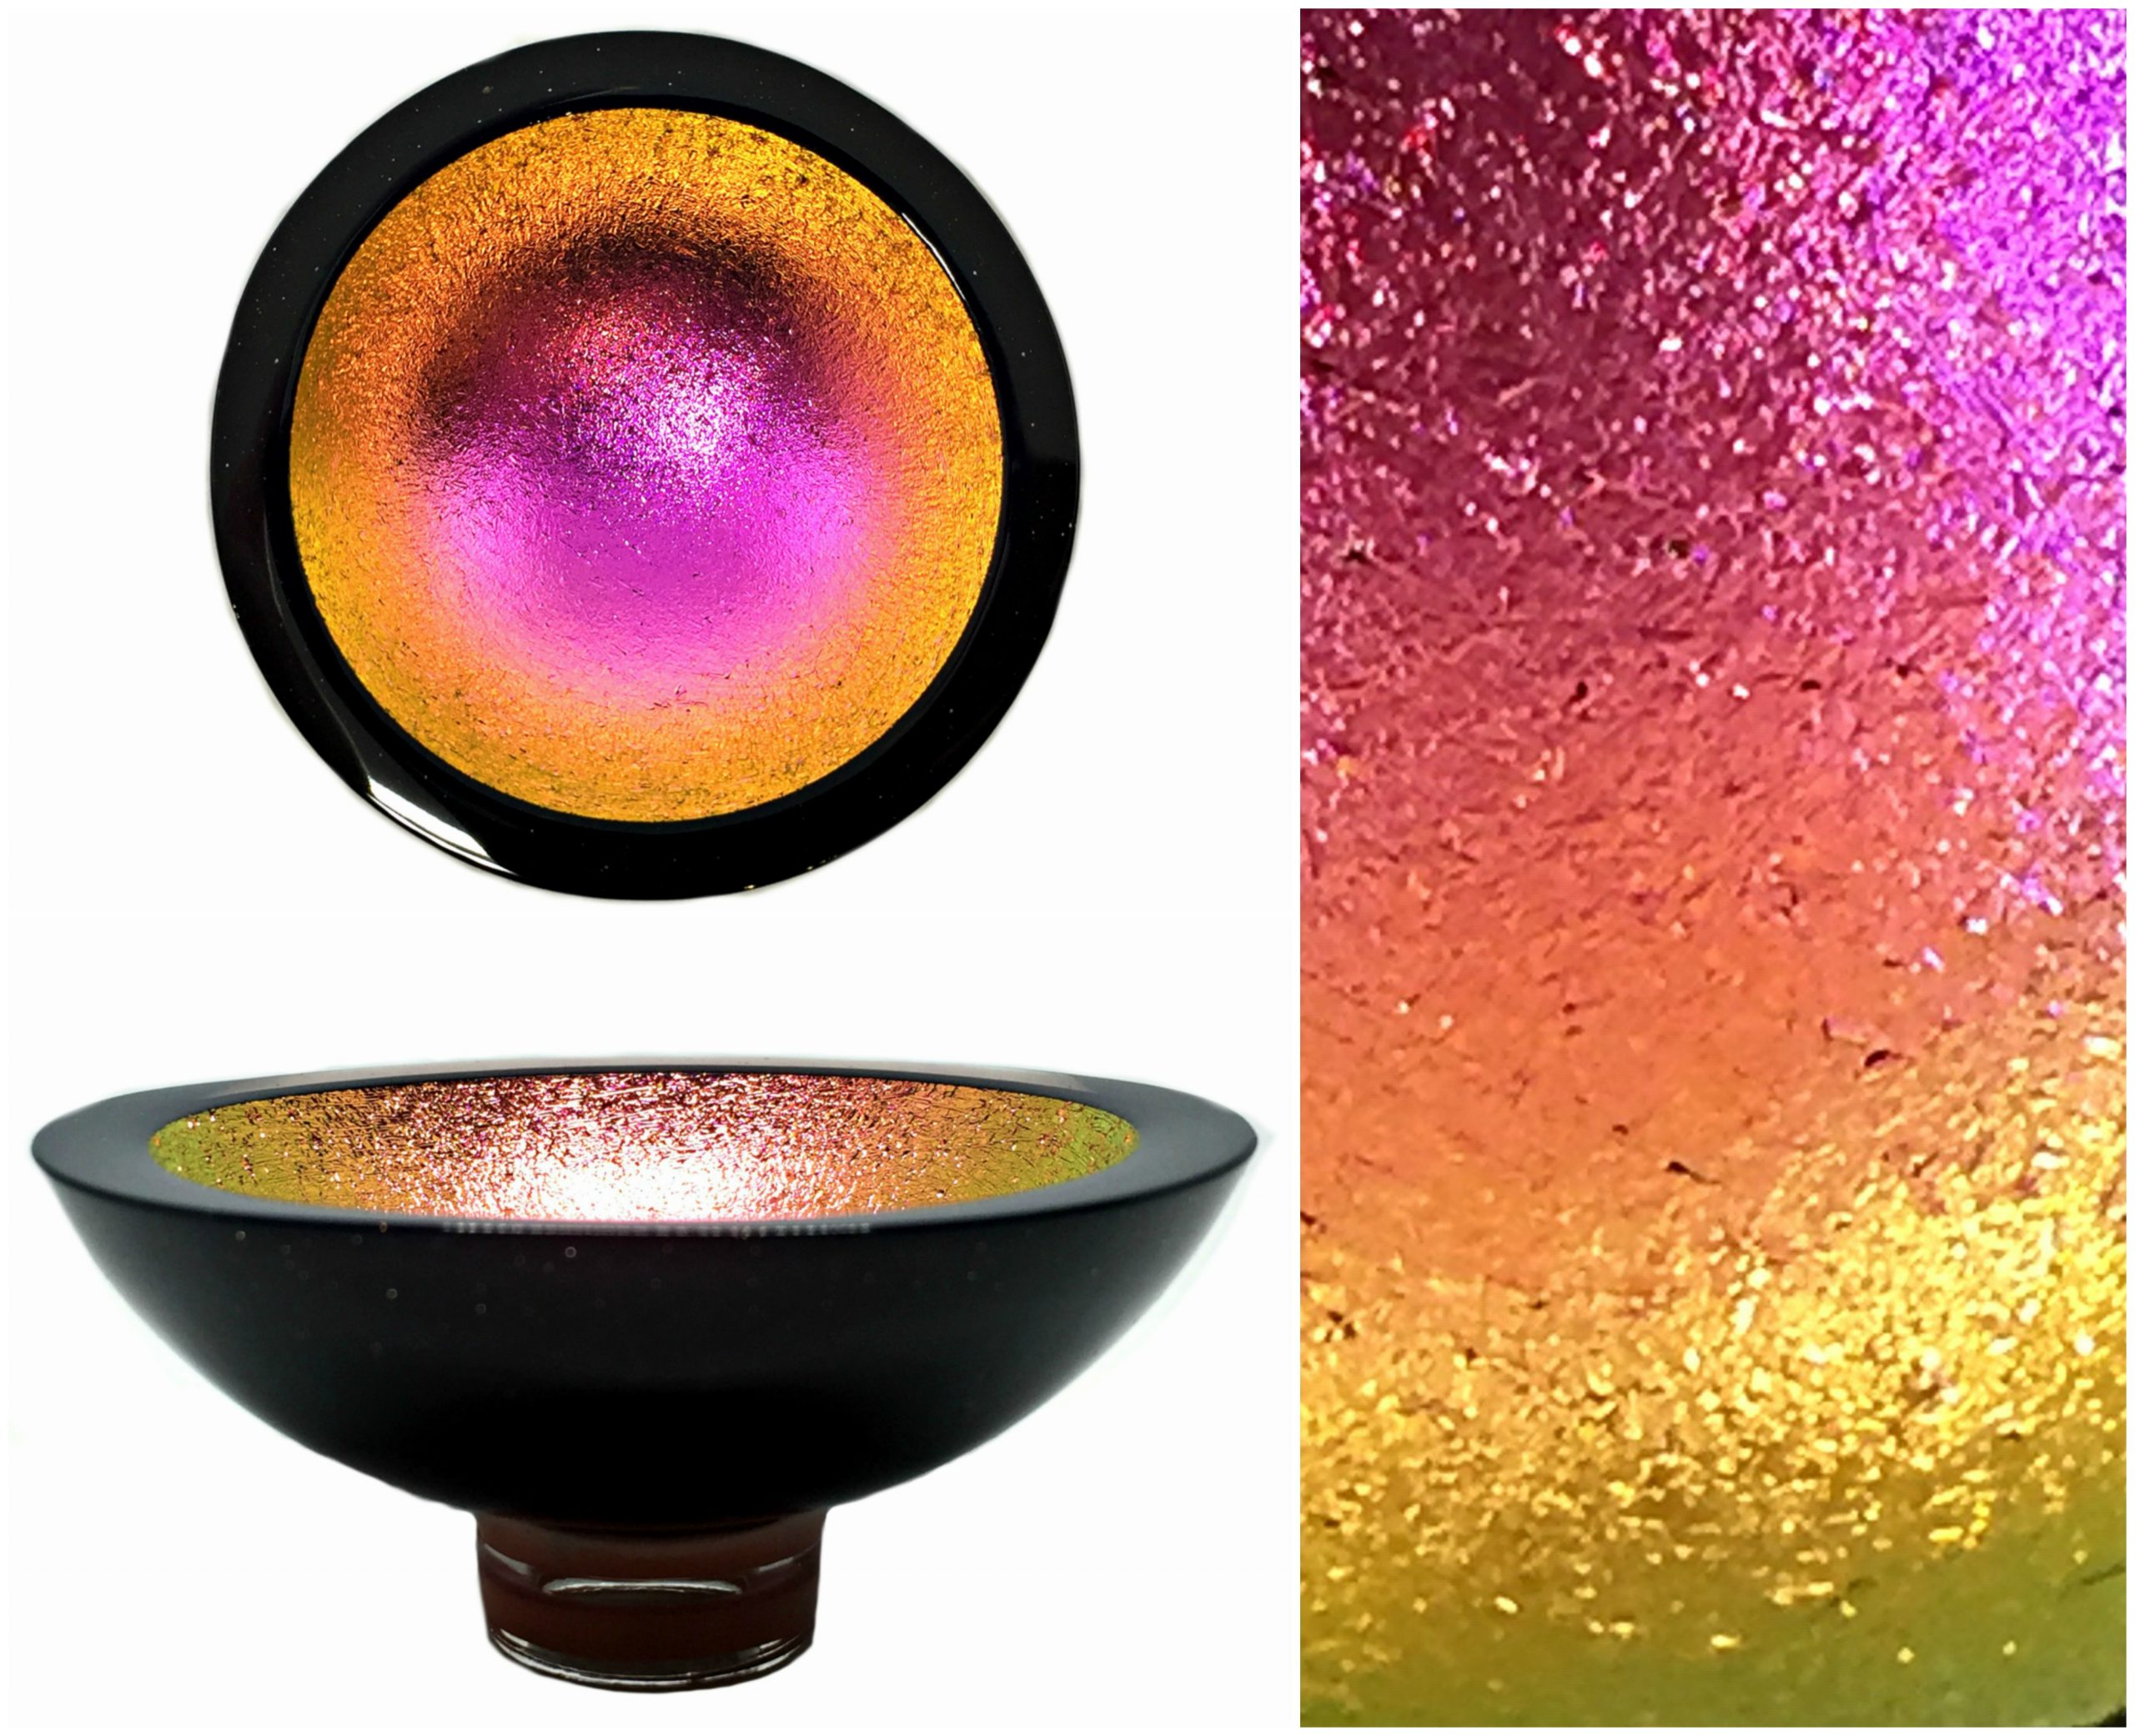 Multichrome Thing of Beauty 3331, dichroic glass bowl by Jo Ludwig | Effusion Art Gallery + Glass Studio, Invermere BC